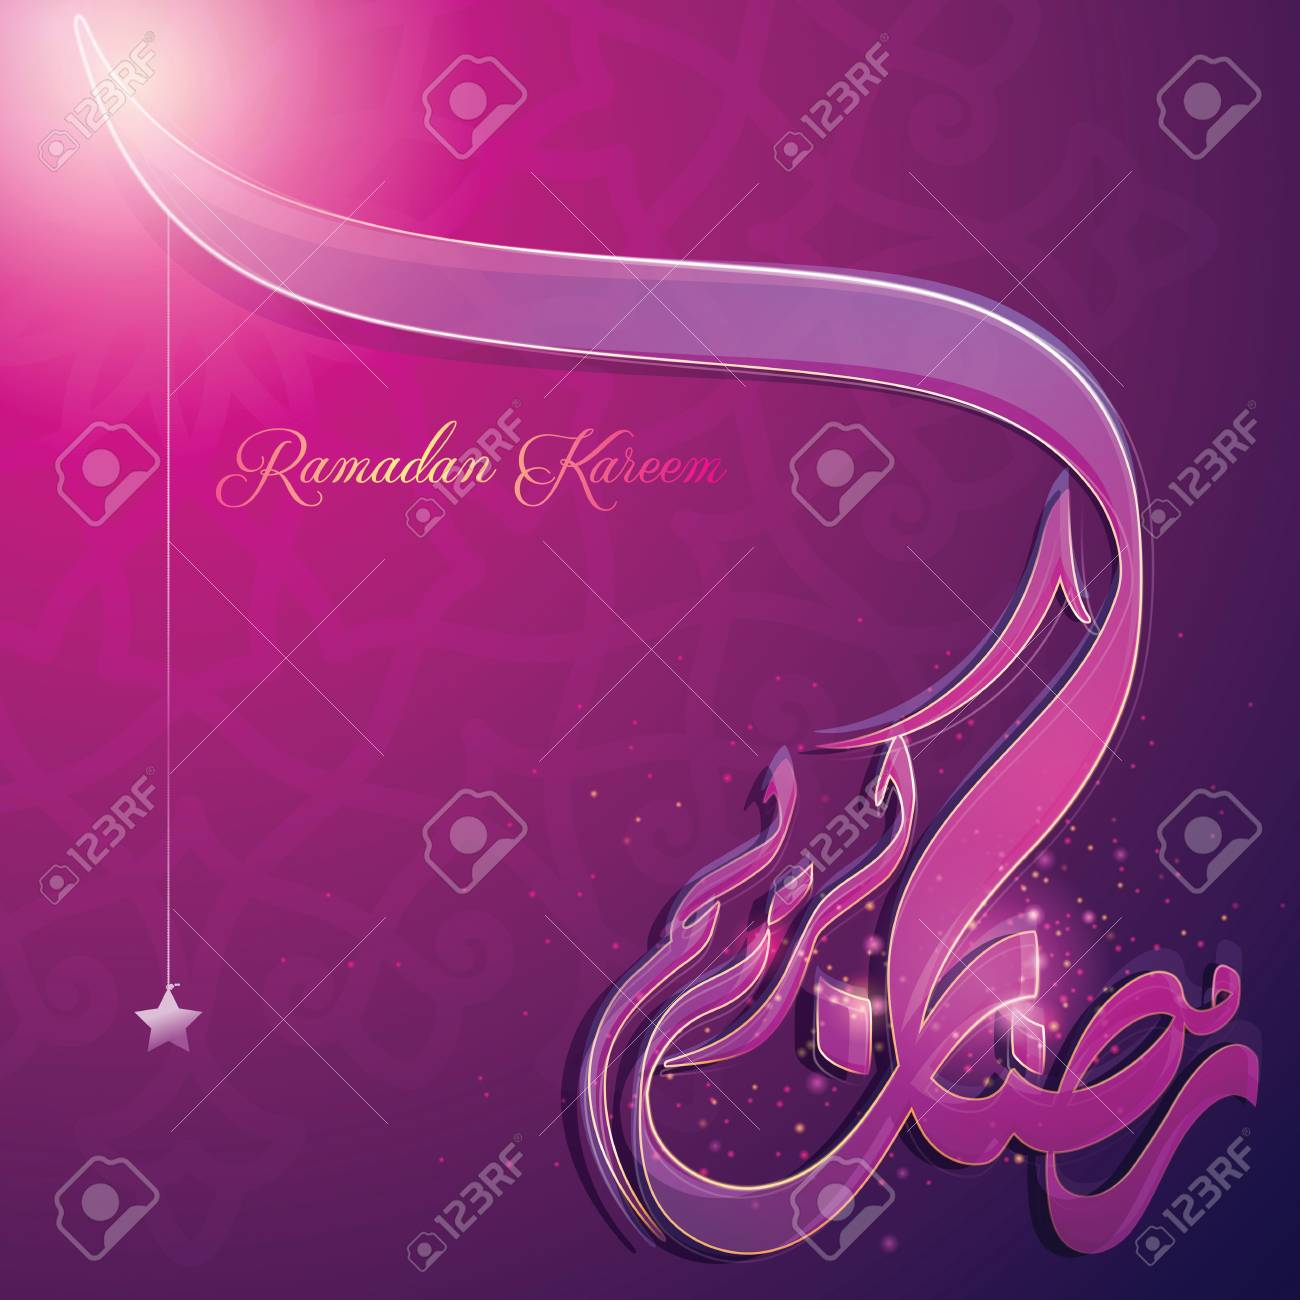 Ramadan Kareem Arabic Calligraphy For Islamic Greeting Royalty Free